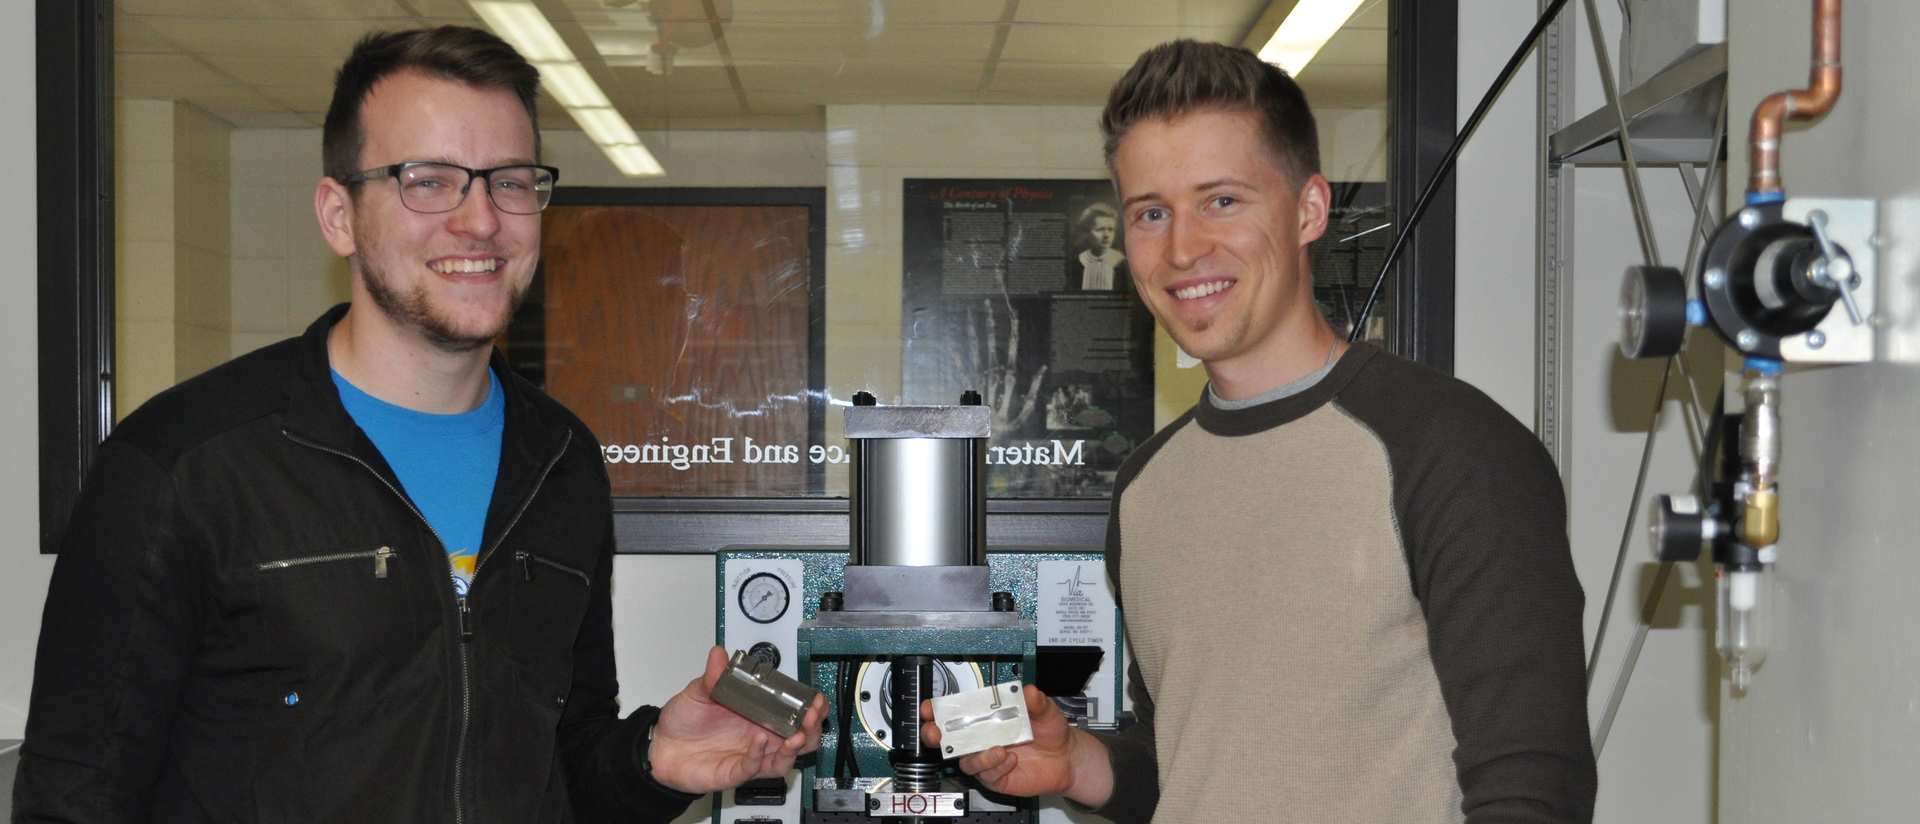 Peter McCamley and Mathew Guenther capstone project injection molding for MS+E